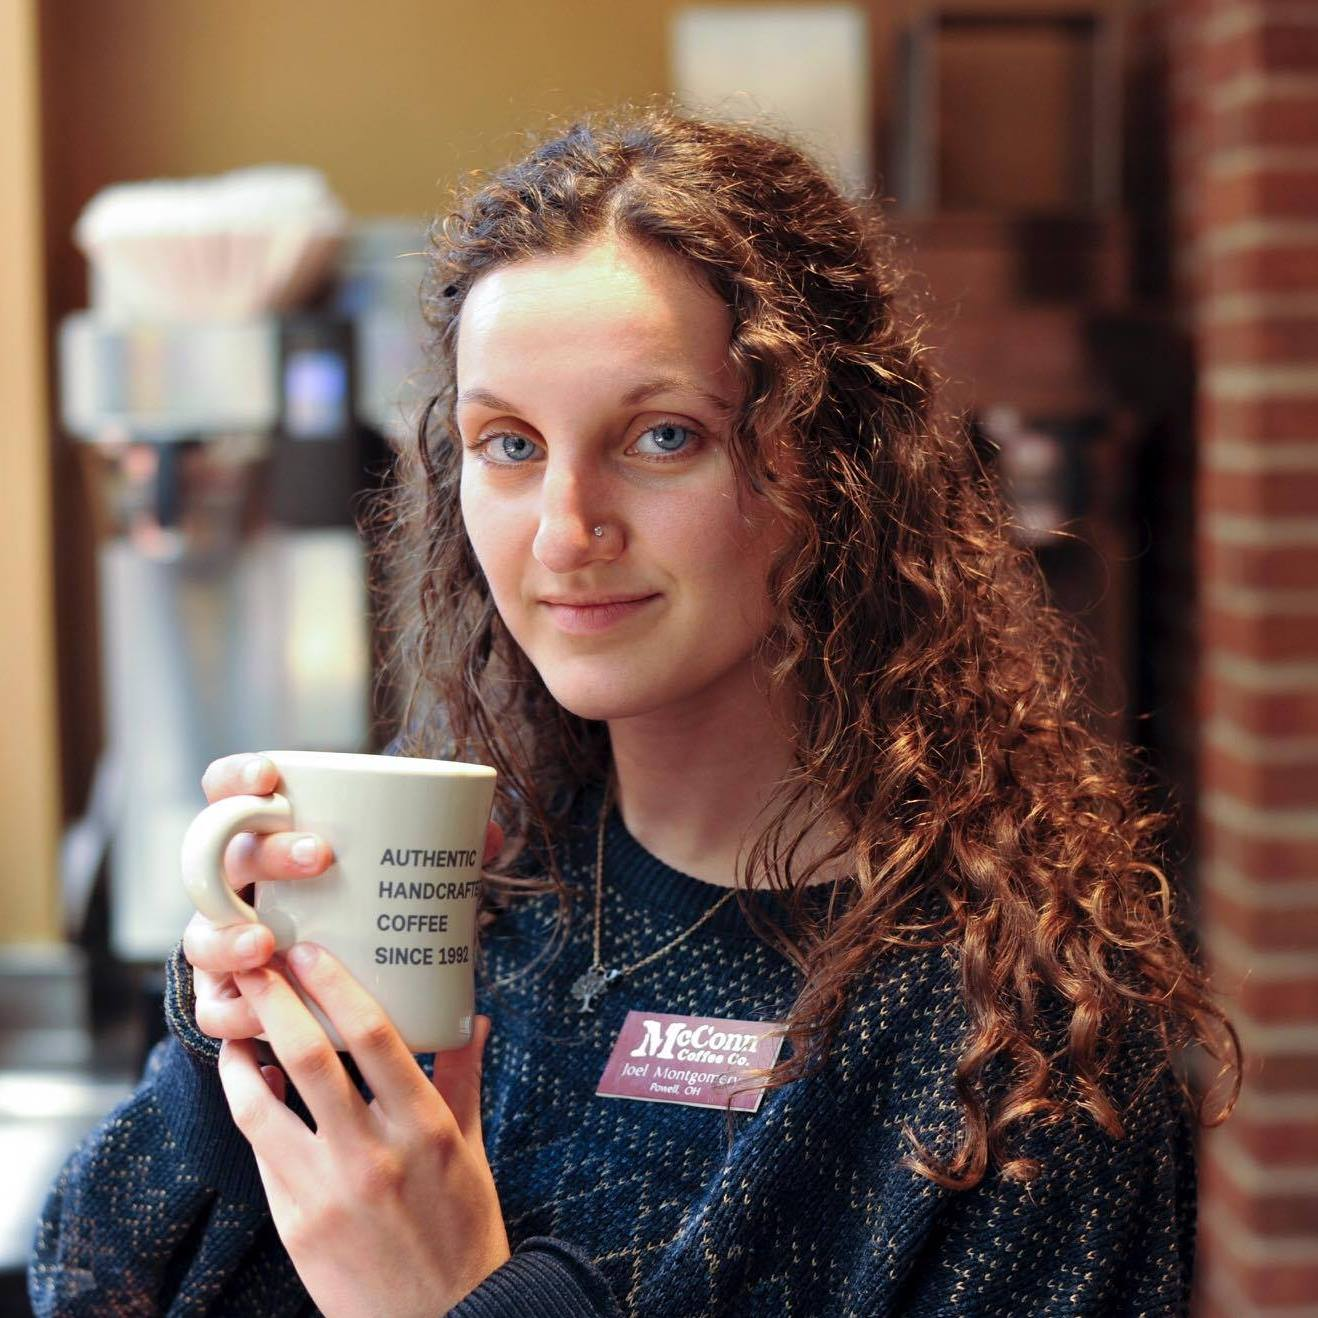 Mikayla Mirazzi with mug of coffee